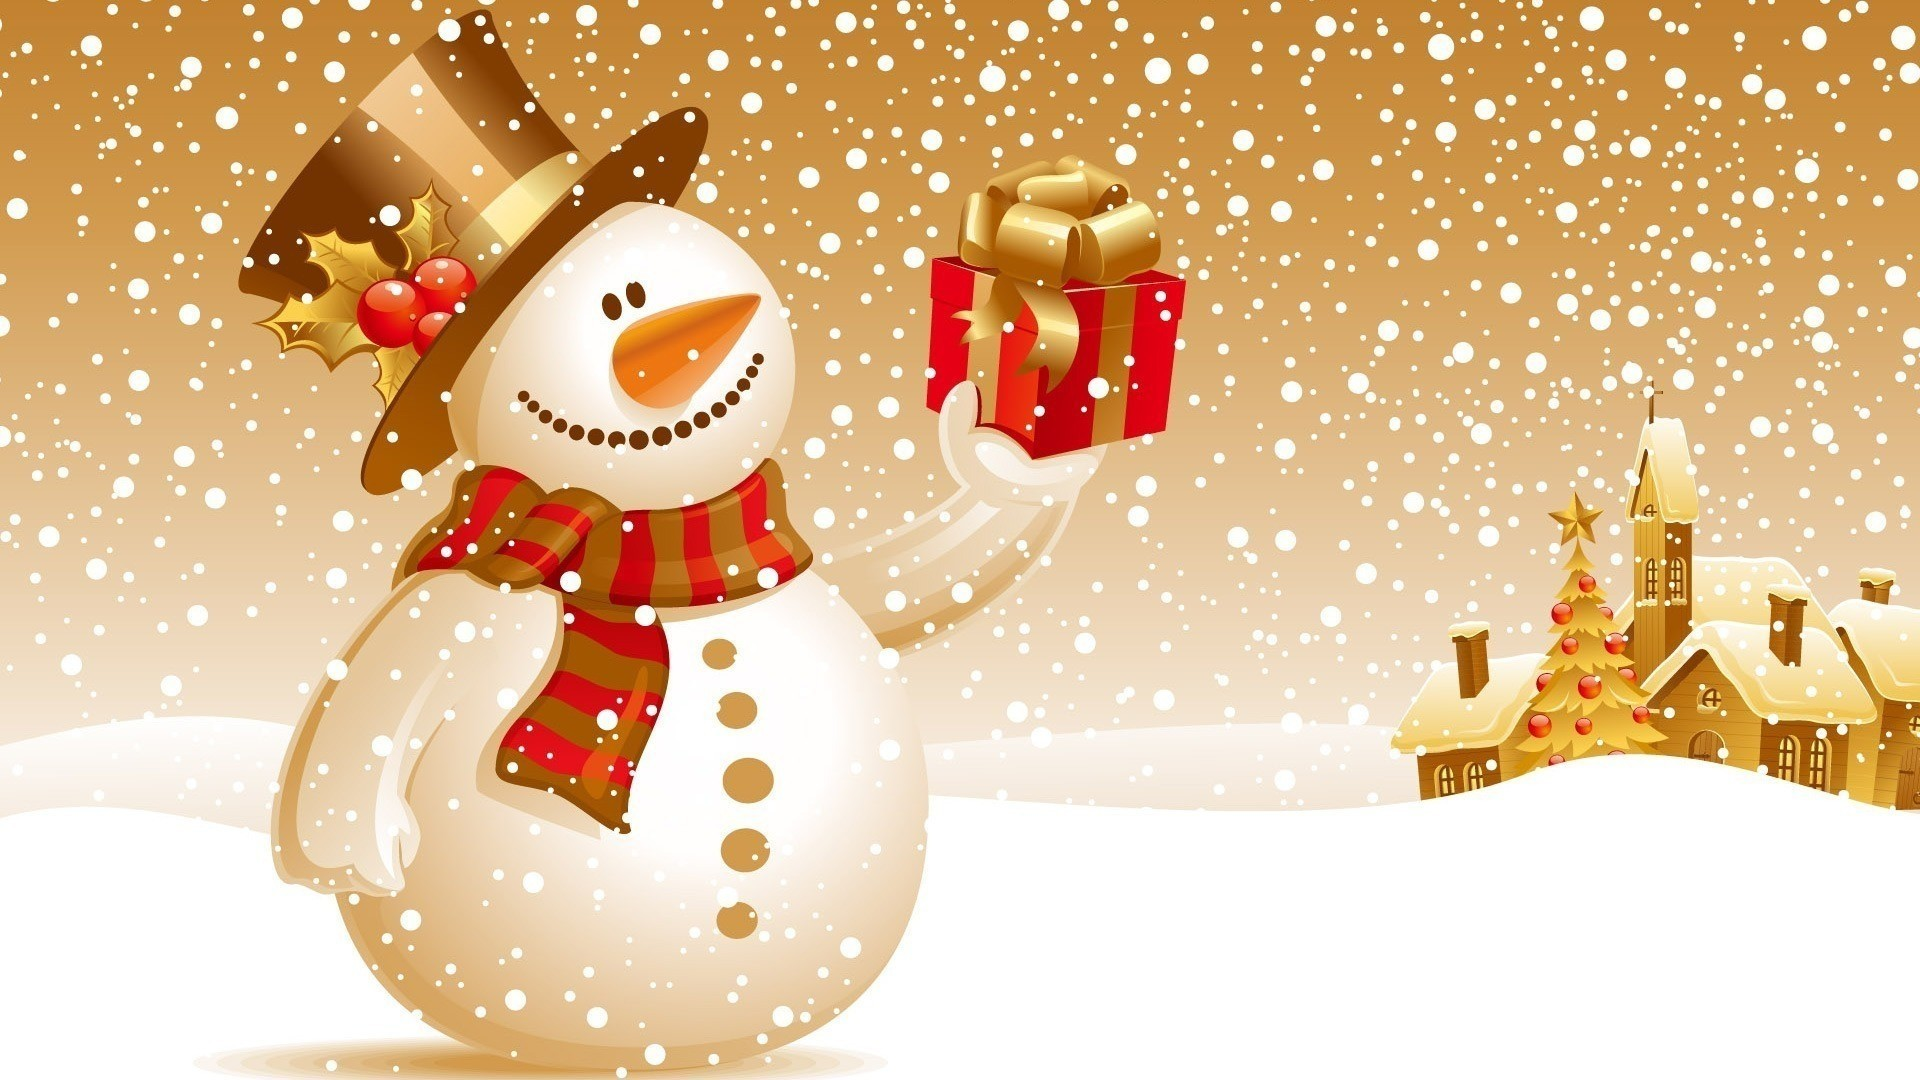 Animated christmas gifs for email